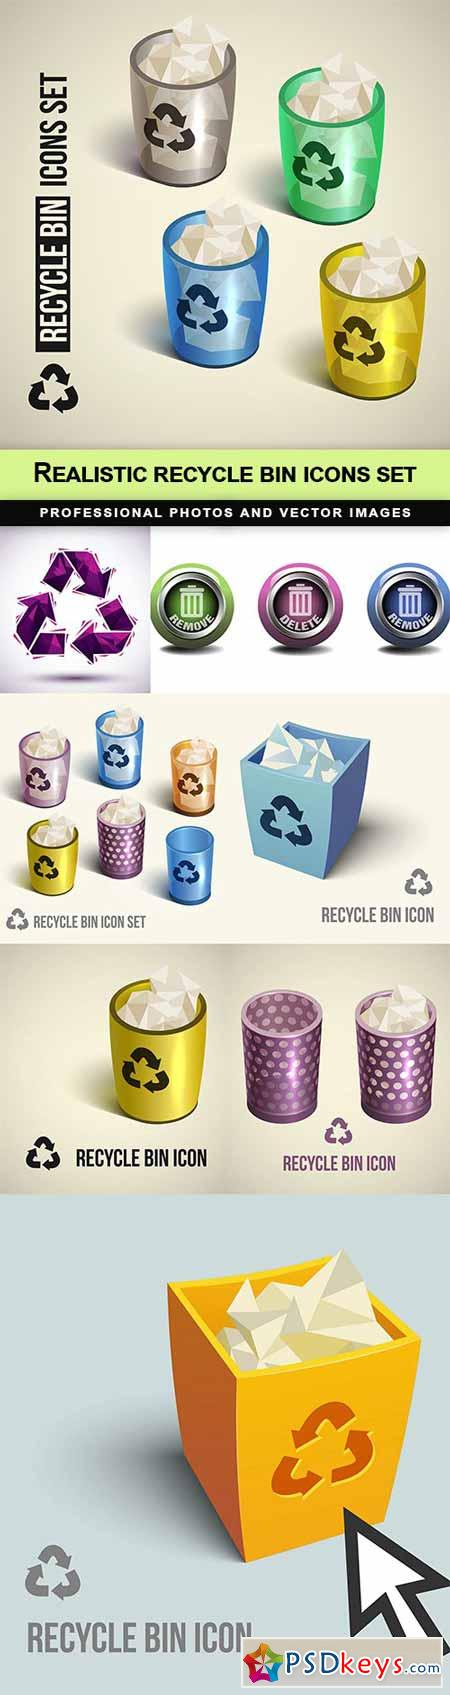 Realistic recycle bin icons set - 8 EPS